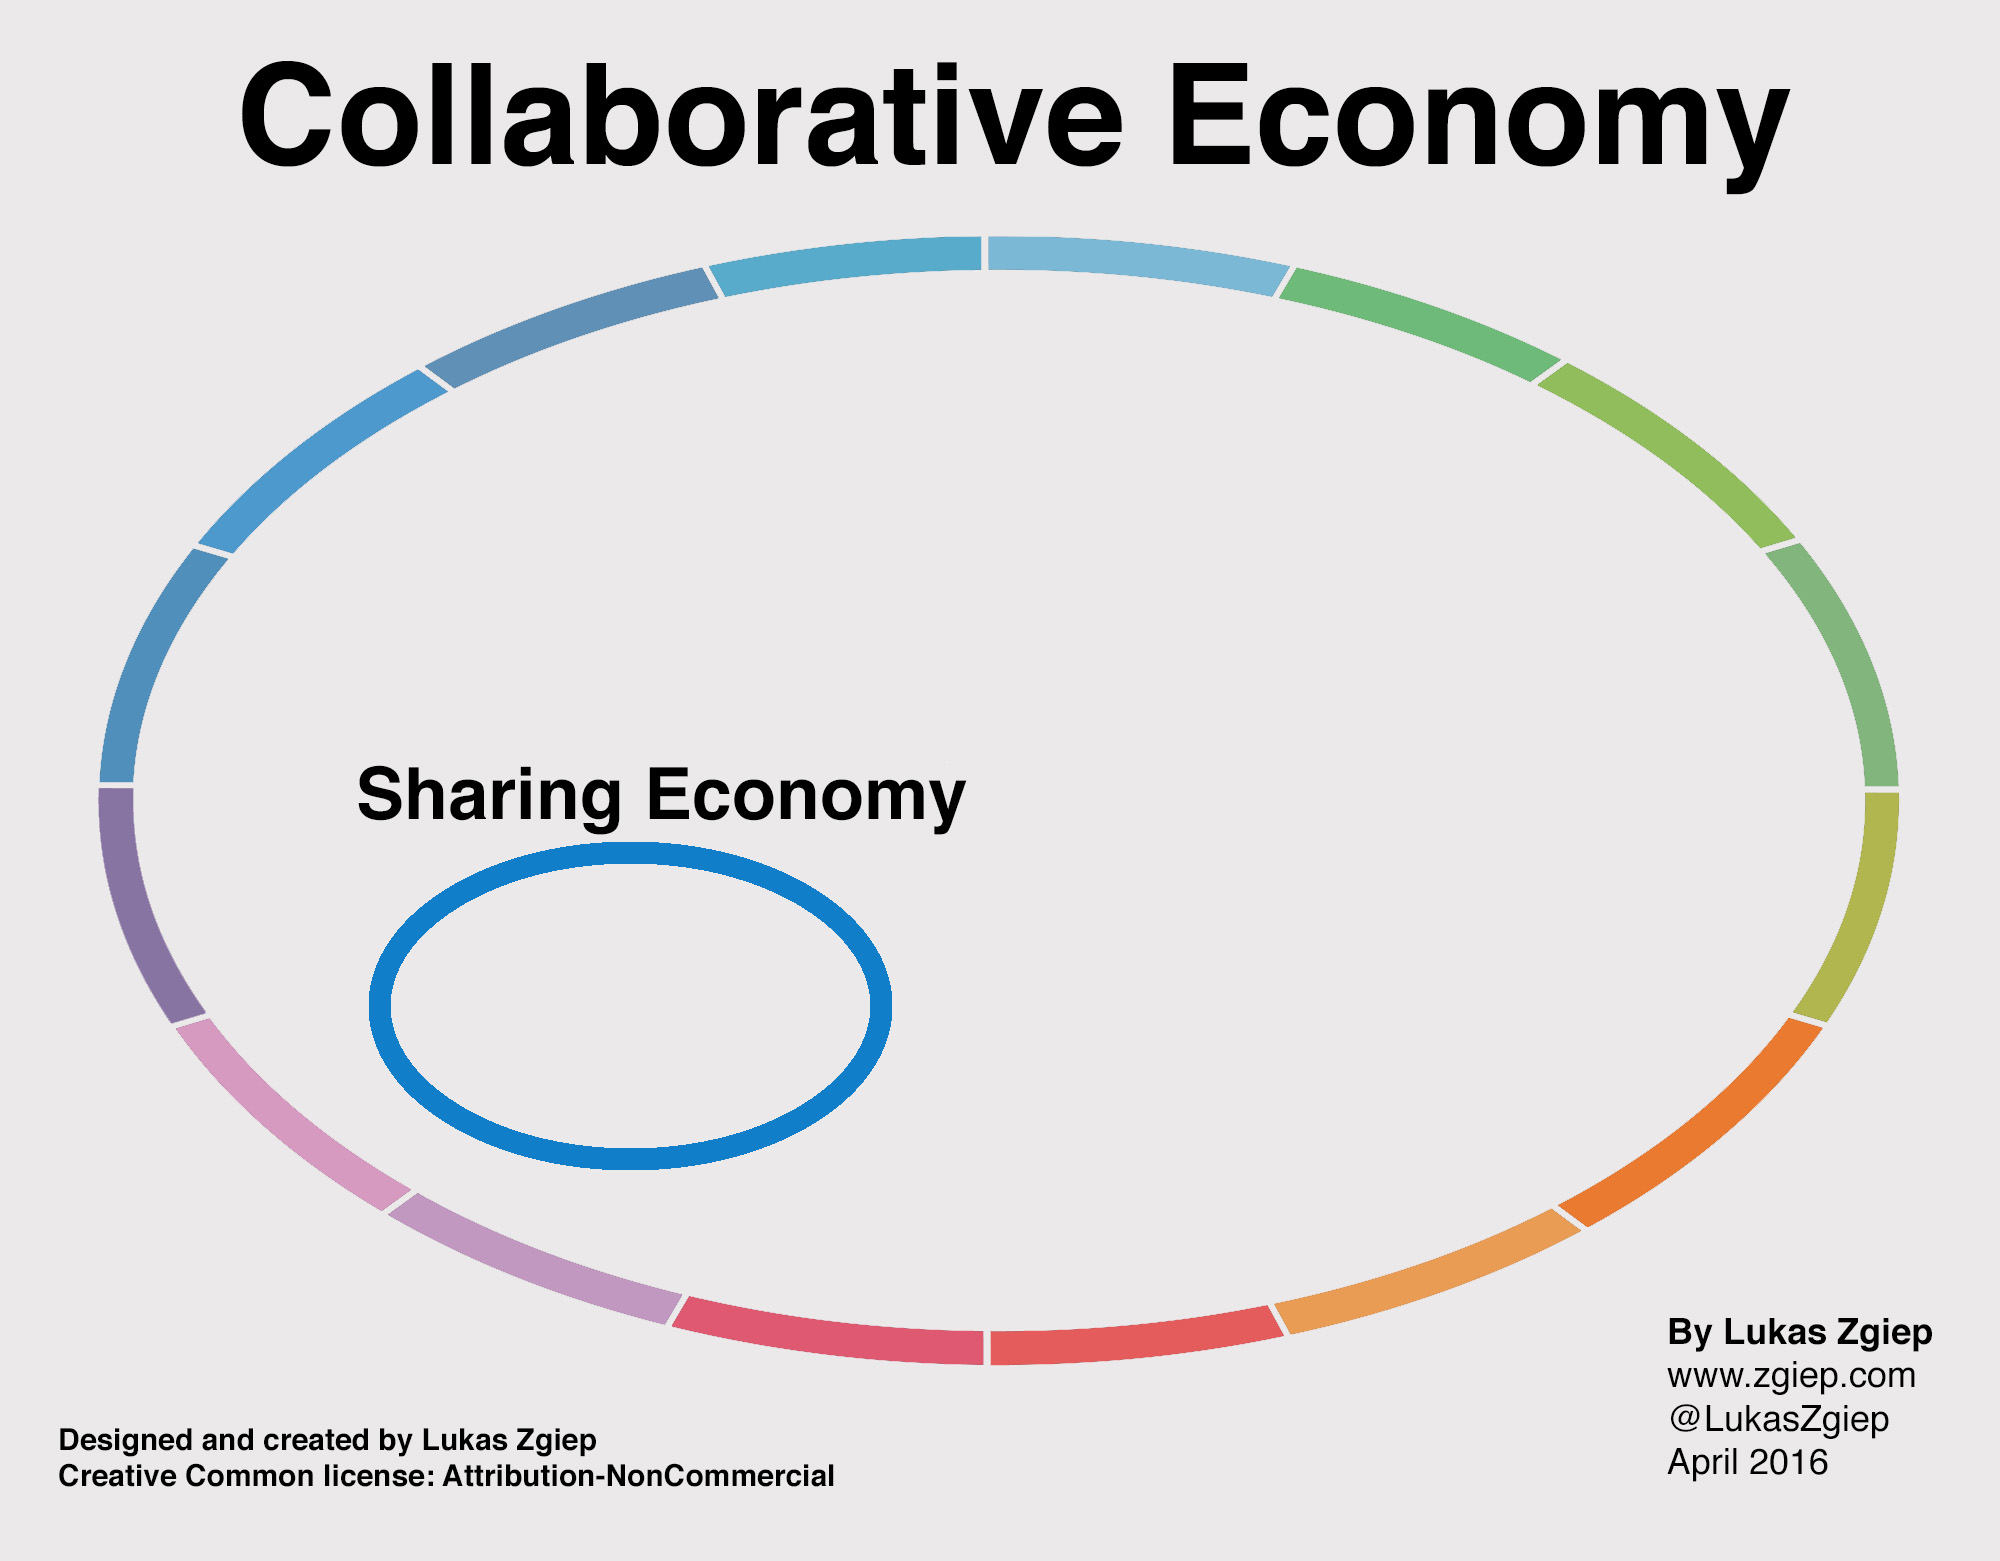 sharing vs collaborative zgiepcom